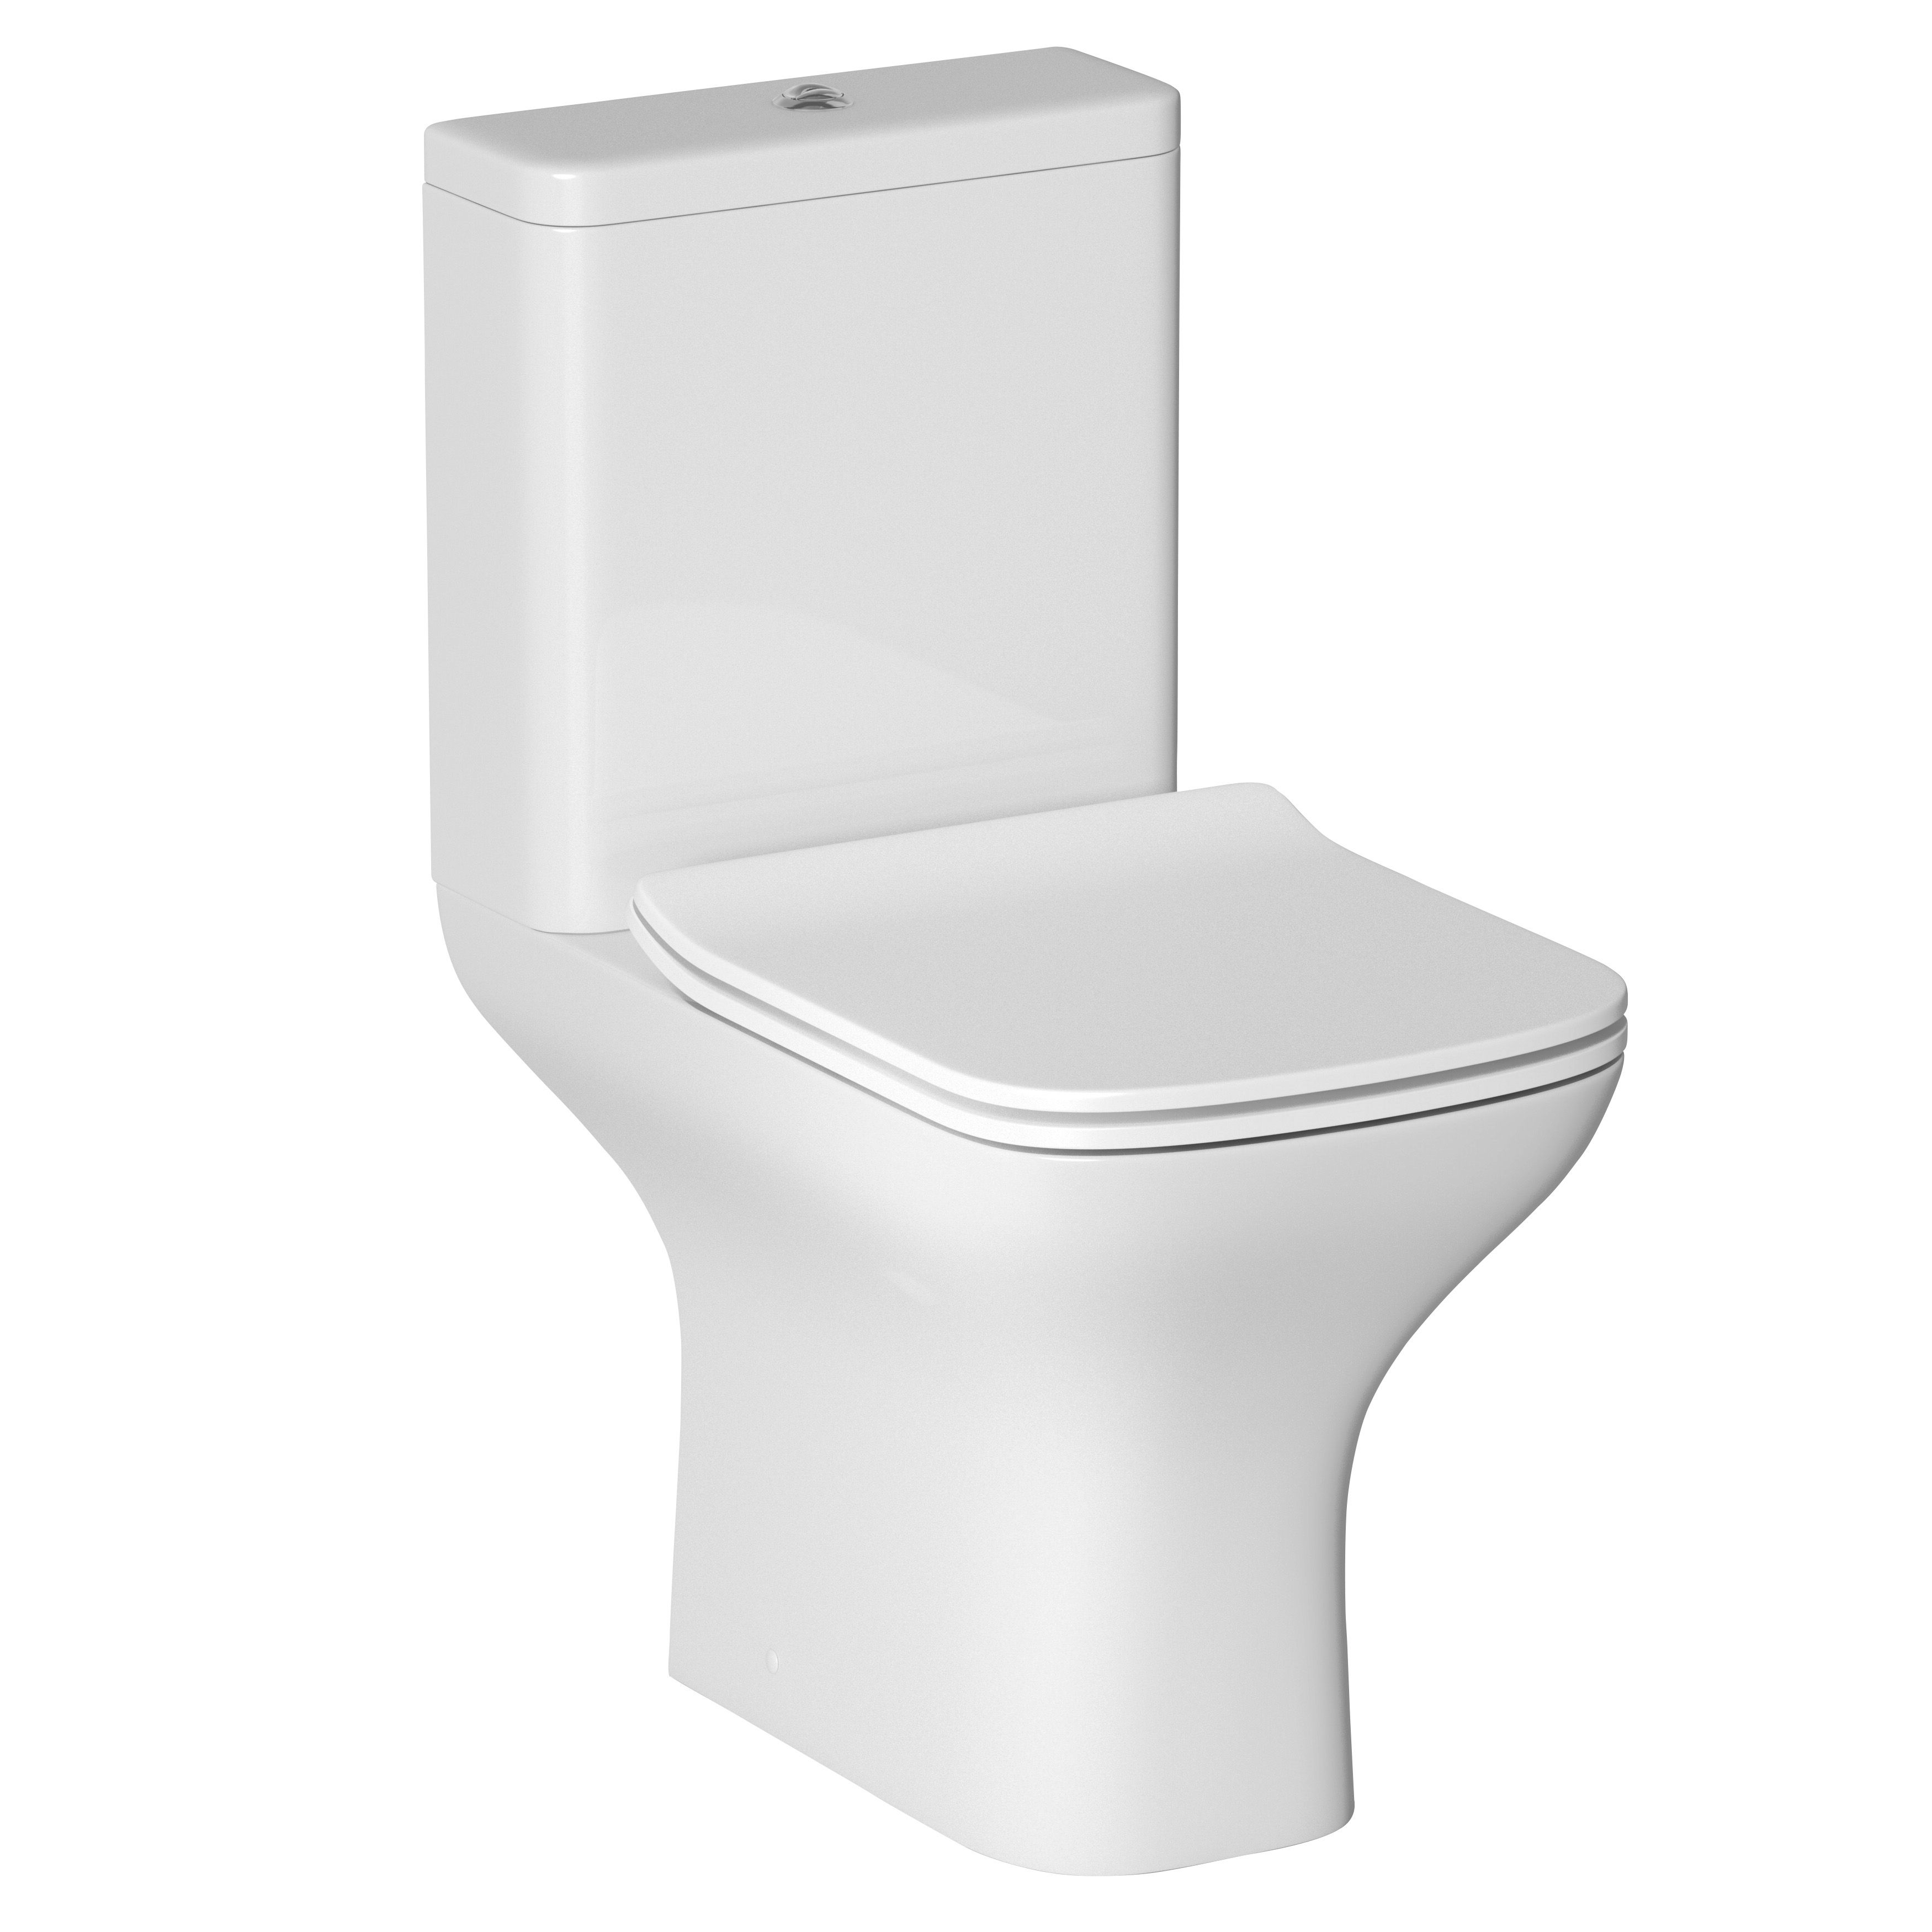 Cooke Lewis Lanzo Close Coupled Toilet With Soft Close Seat